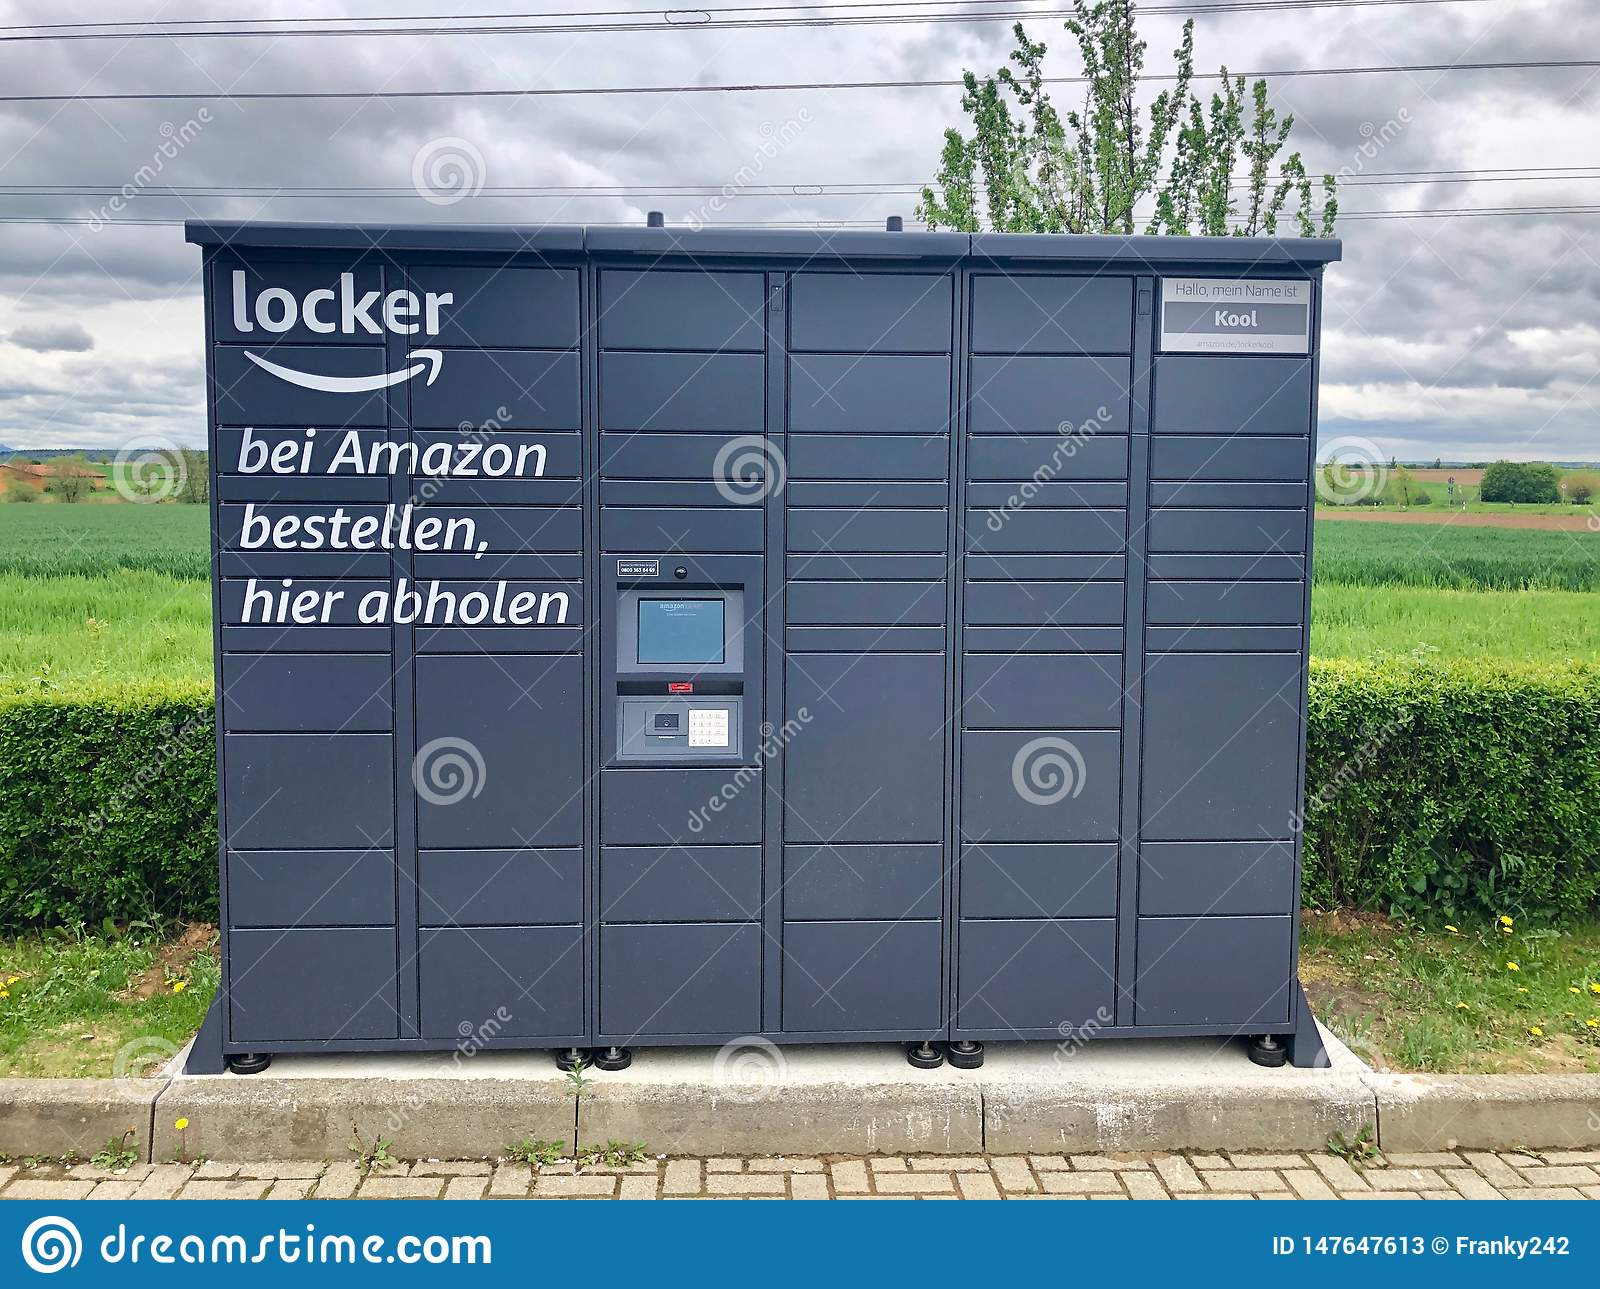 Amazon locker located at a petrol station in Ostfildern, Germany